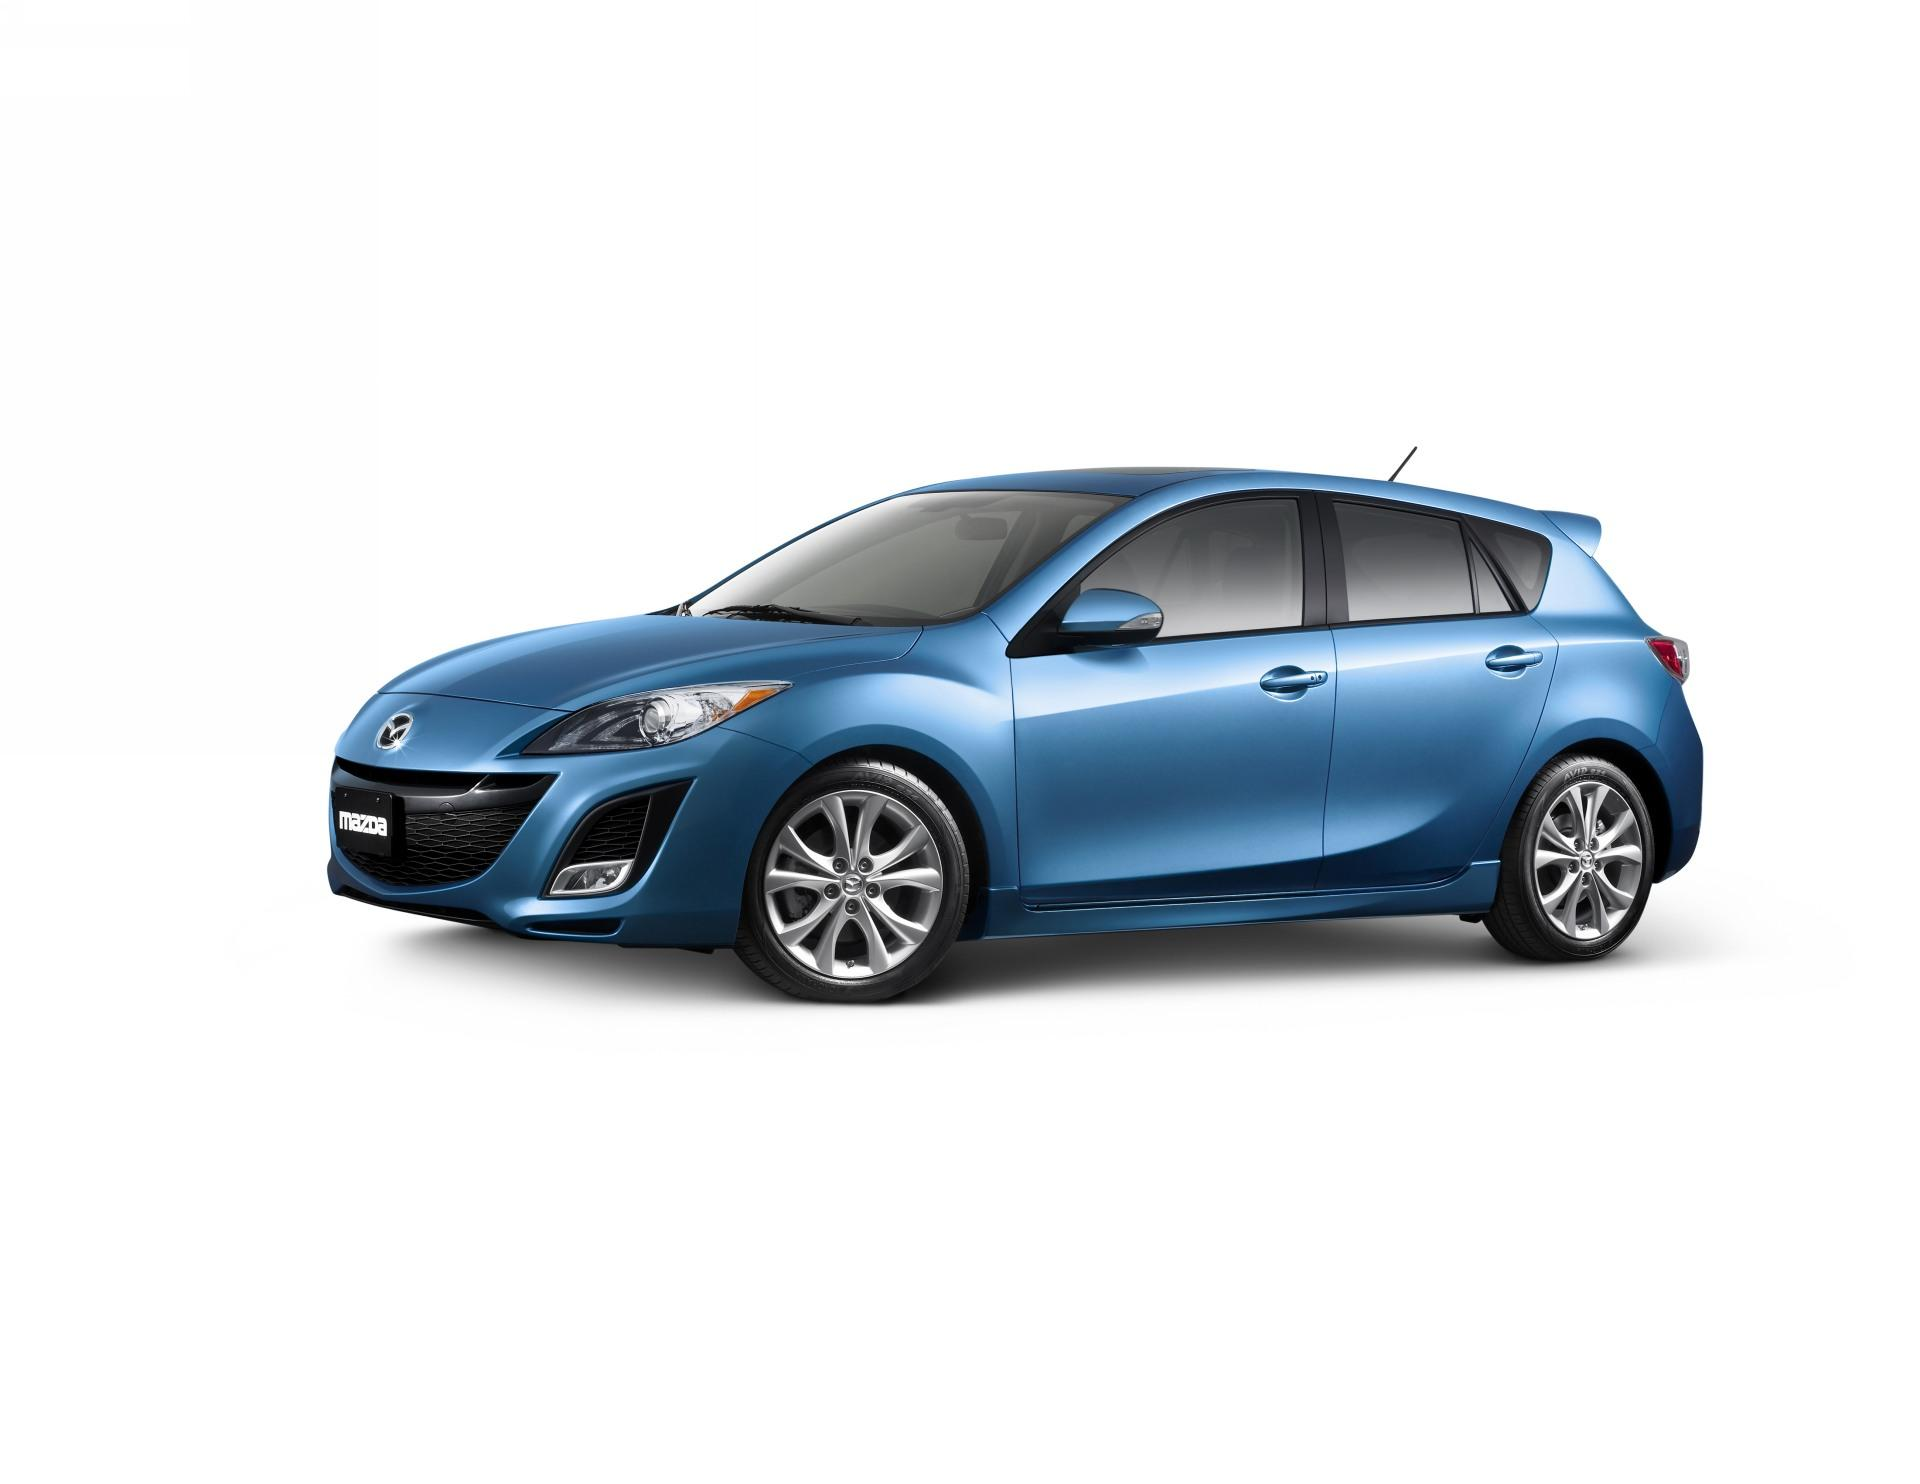 2010 mazda 3 5 door technical specifications and data engine dimensions and mechanical details. Black Bedroom Furniture Sets. Home Design Ideas